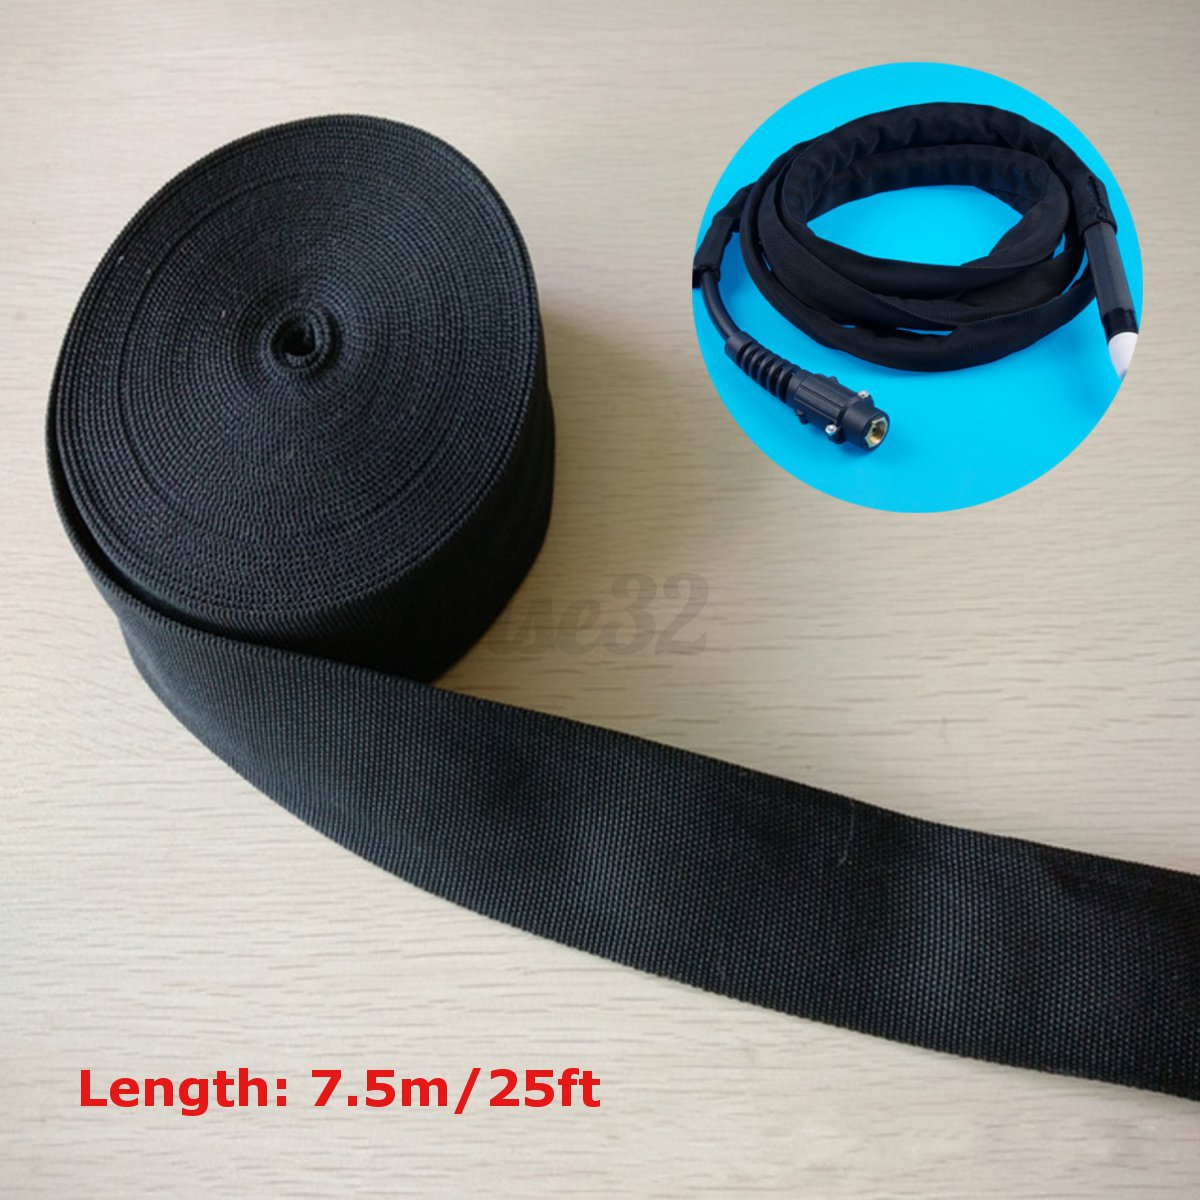 25 Nylon Protective Sleeve Sheath Cable Cover Welding